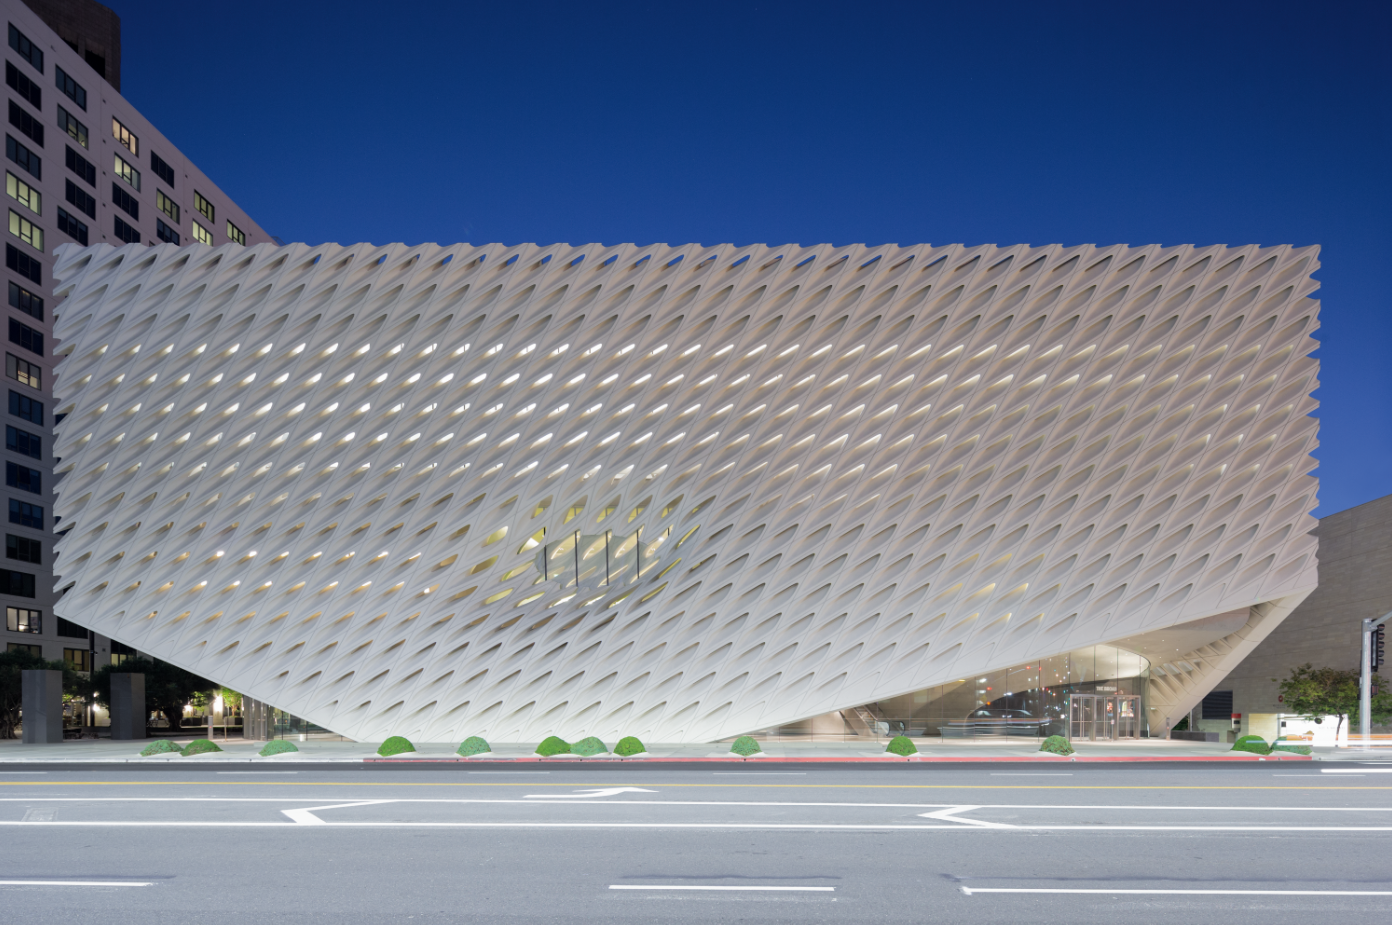 The Broad facade photo by Iwan Baan